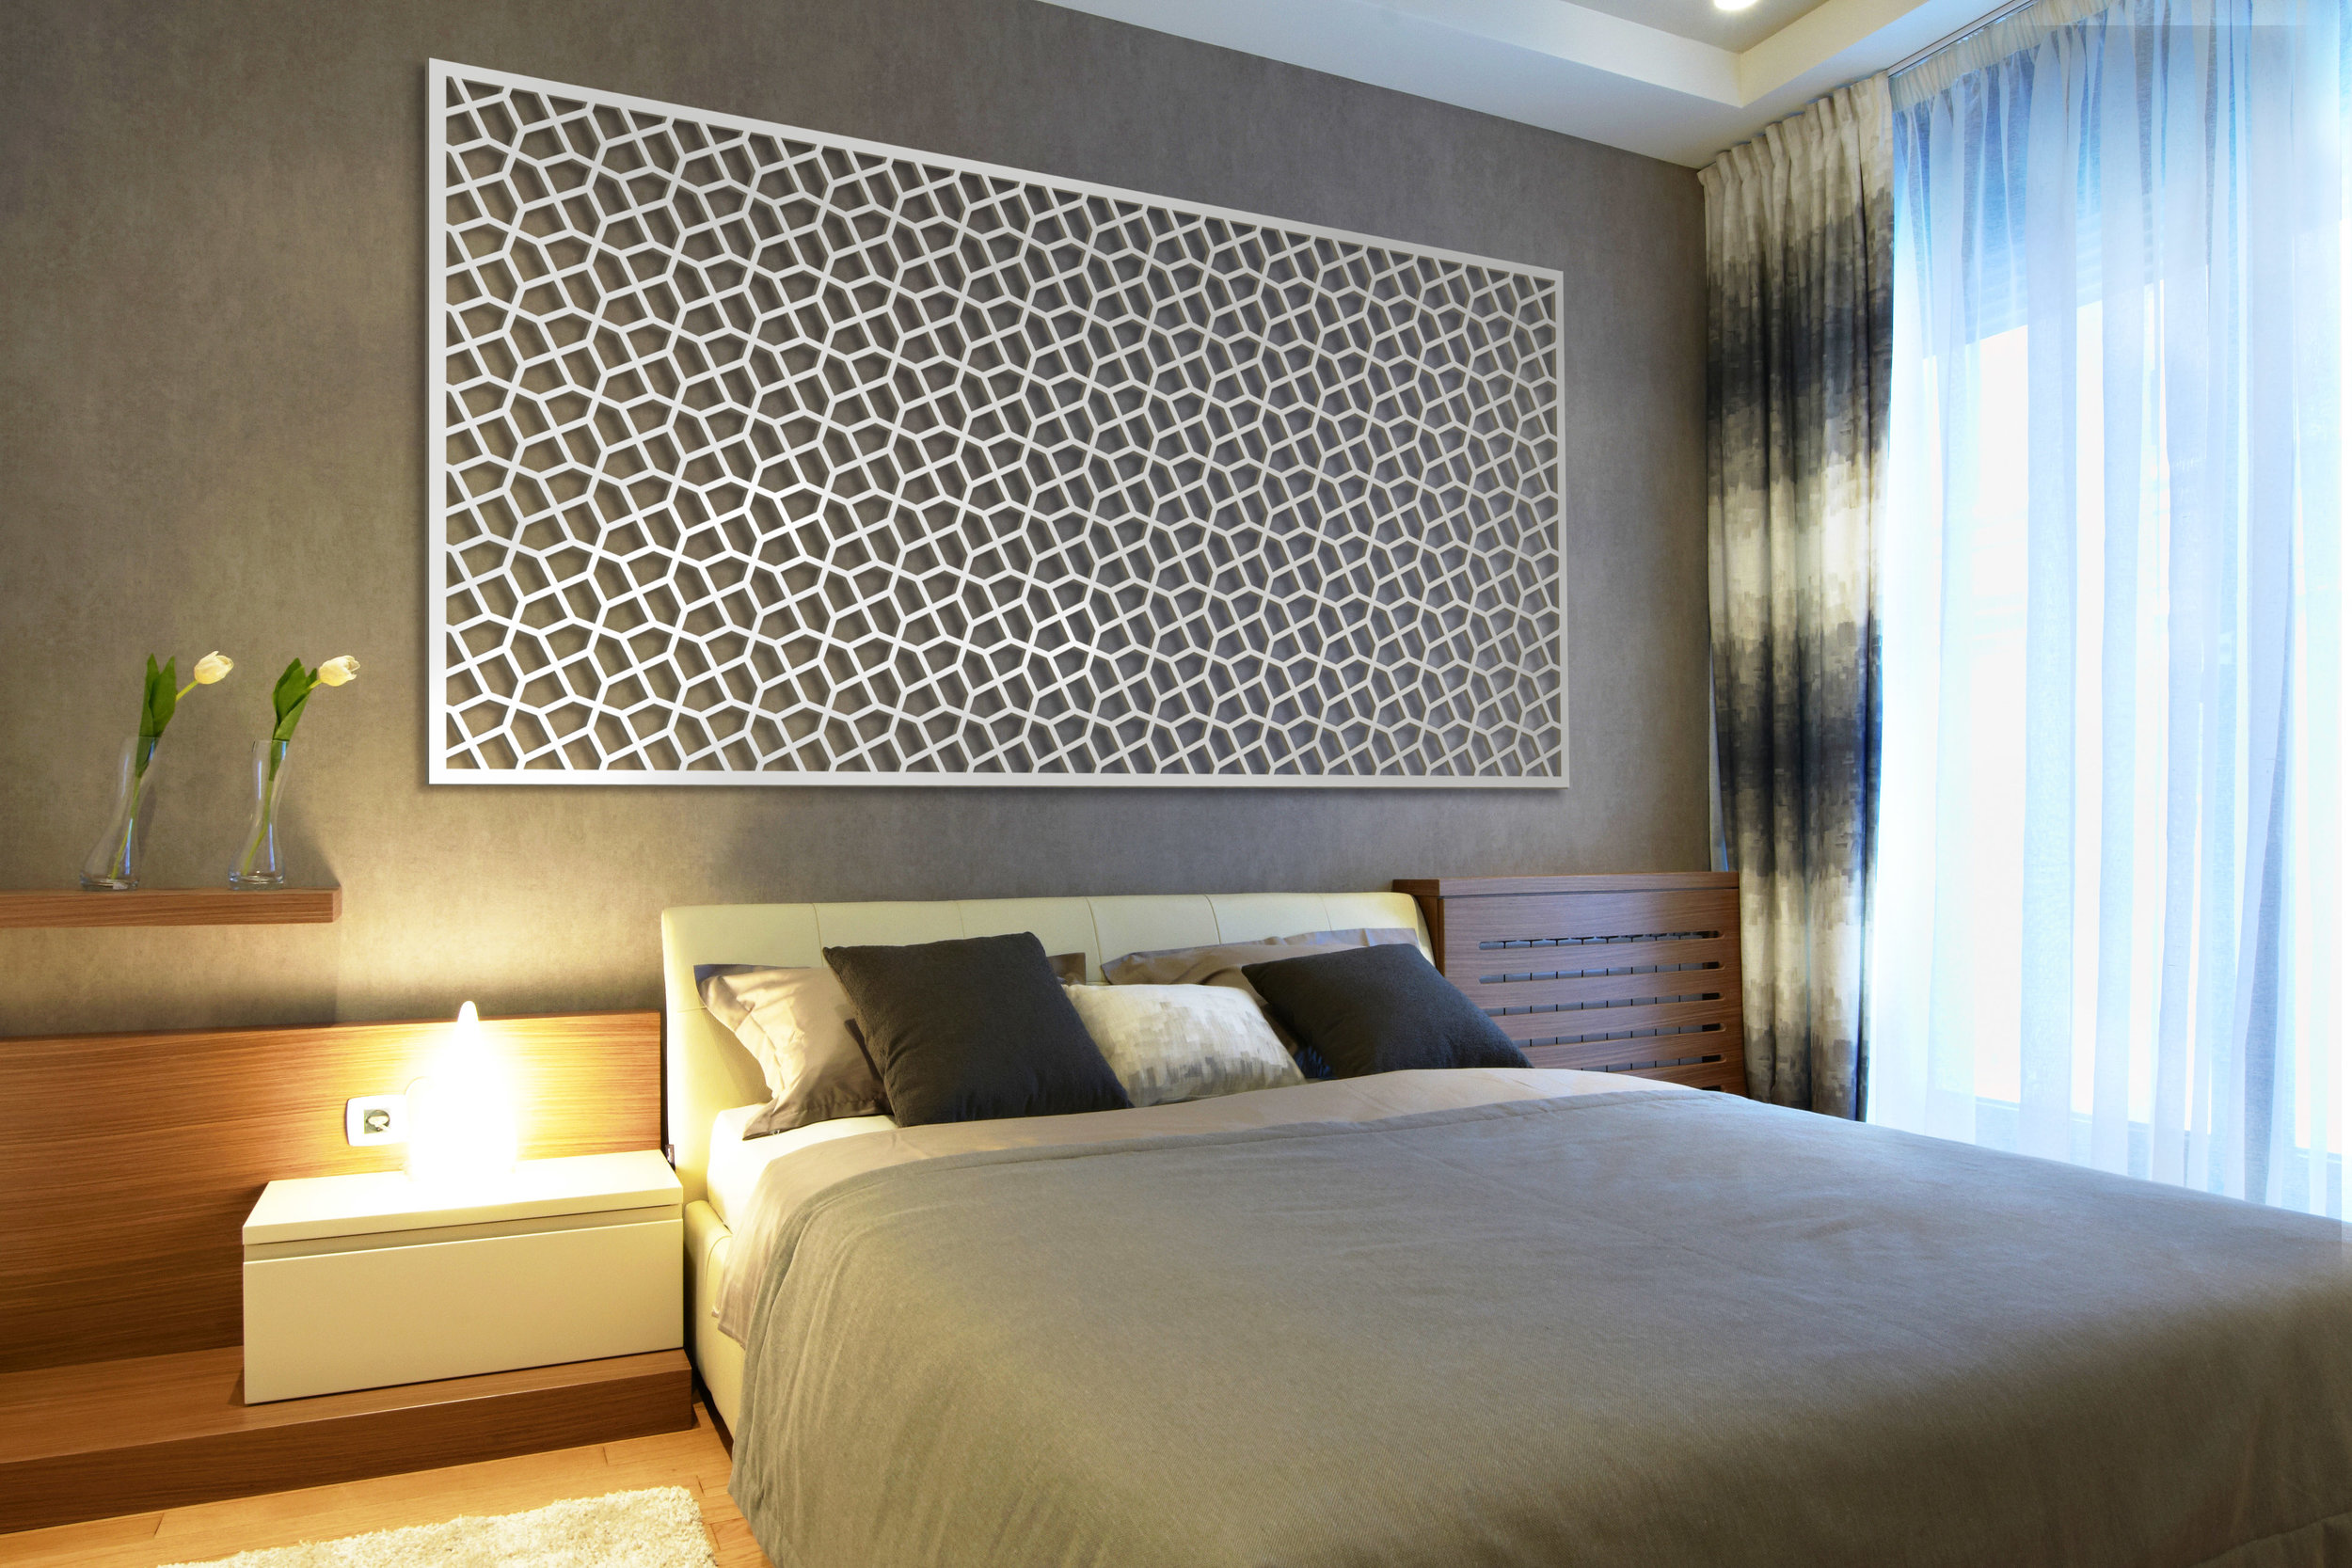 Installation Rendering C   Woven Links decorative hotel wall panel - painted